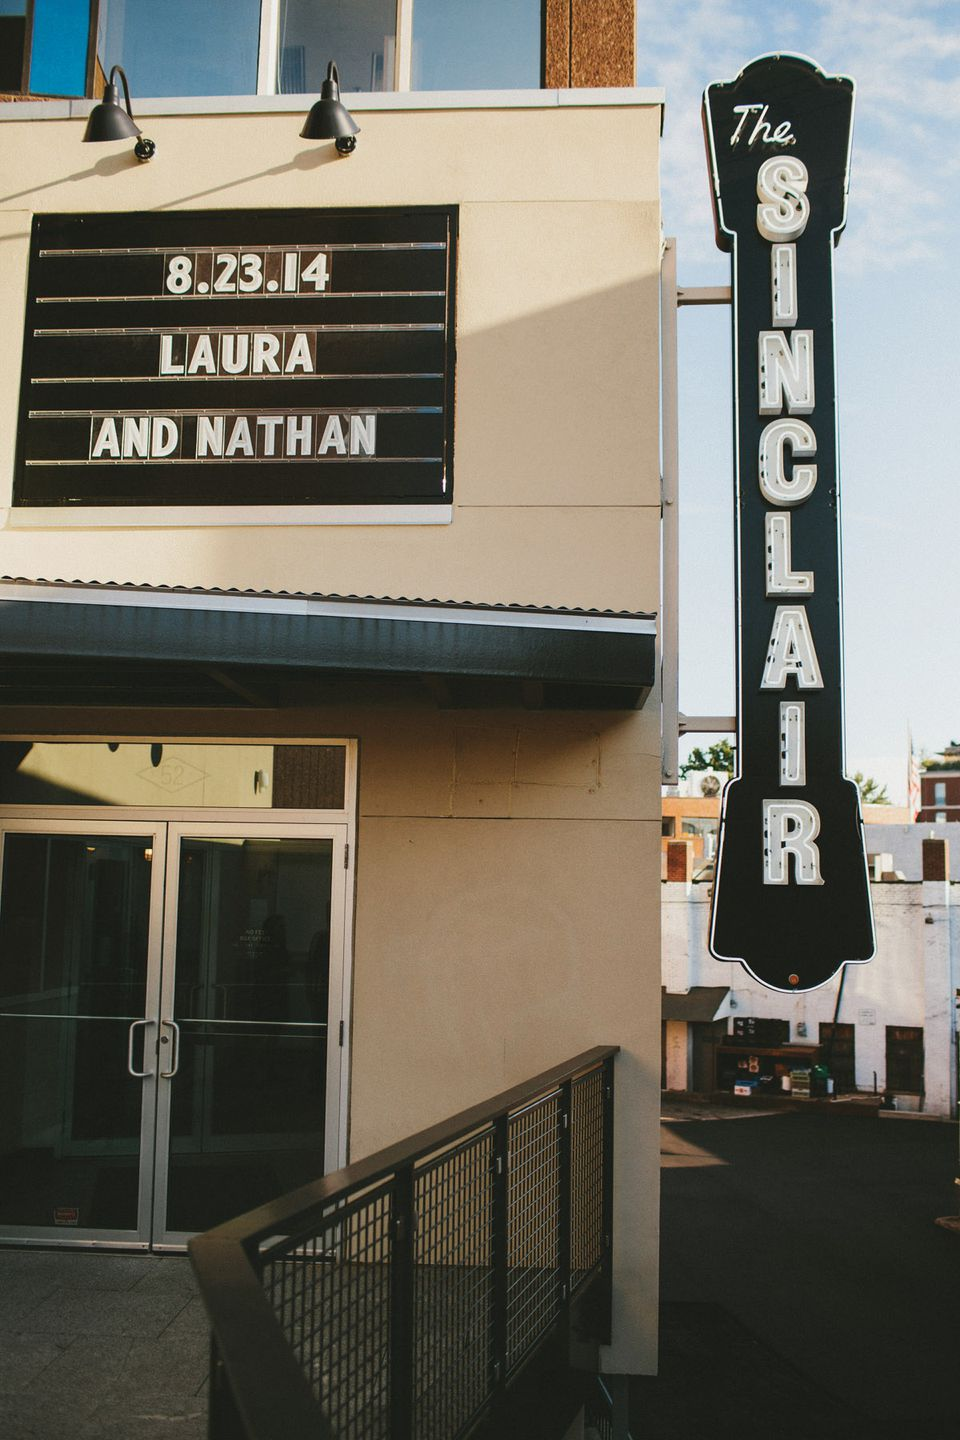 The couple contacted The Sinclair, one of their favorite restaurants, on a whim, just a month before their planned wedding date.